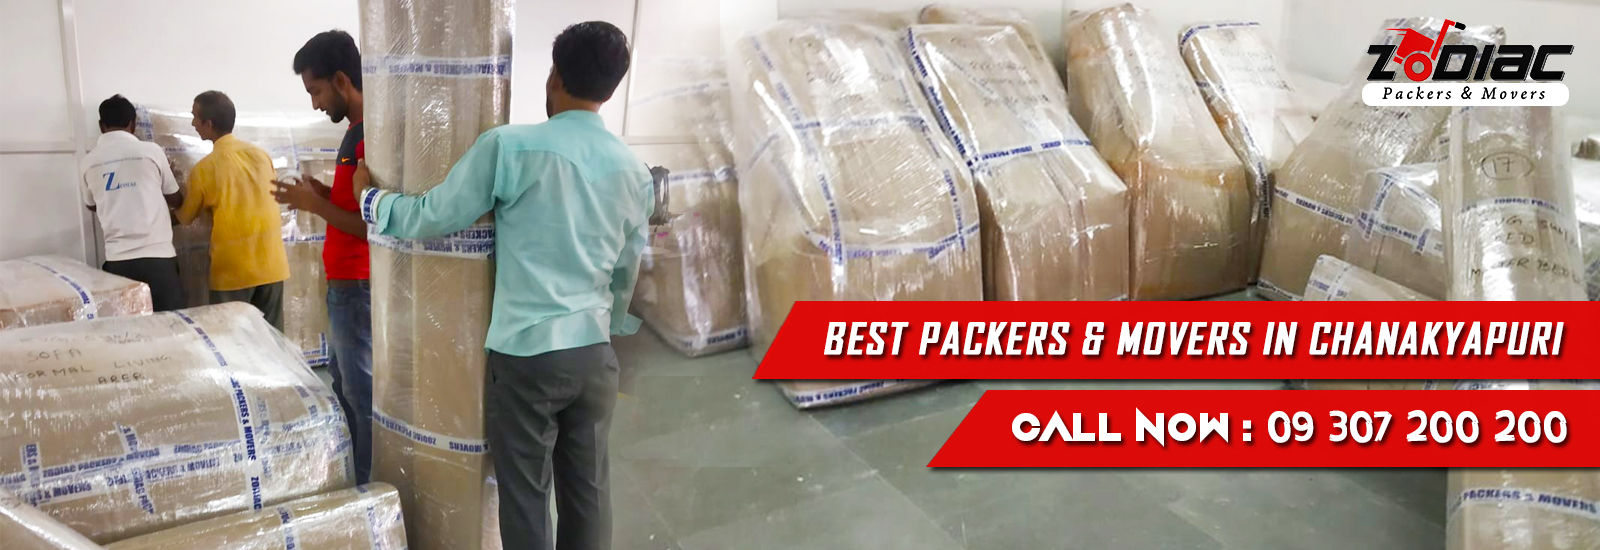 Packers and Movers in Chanakyapuri